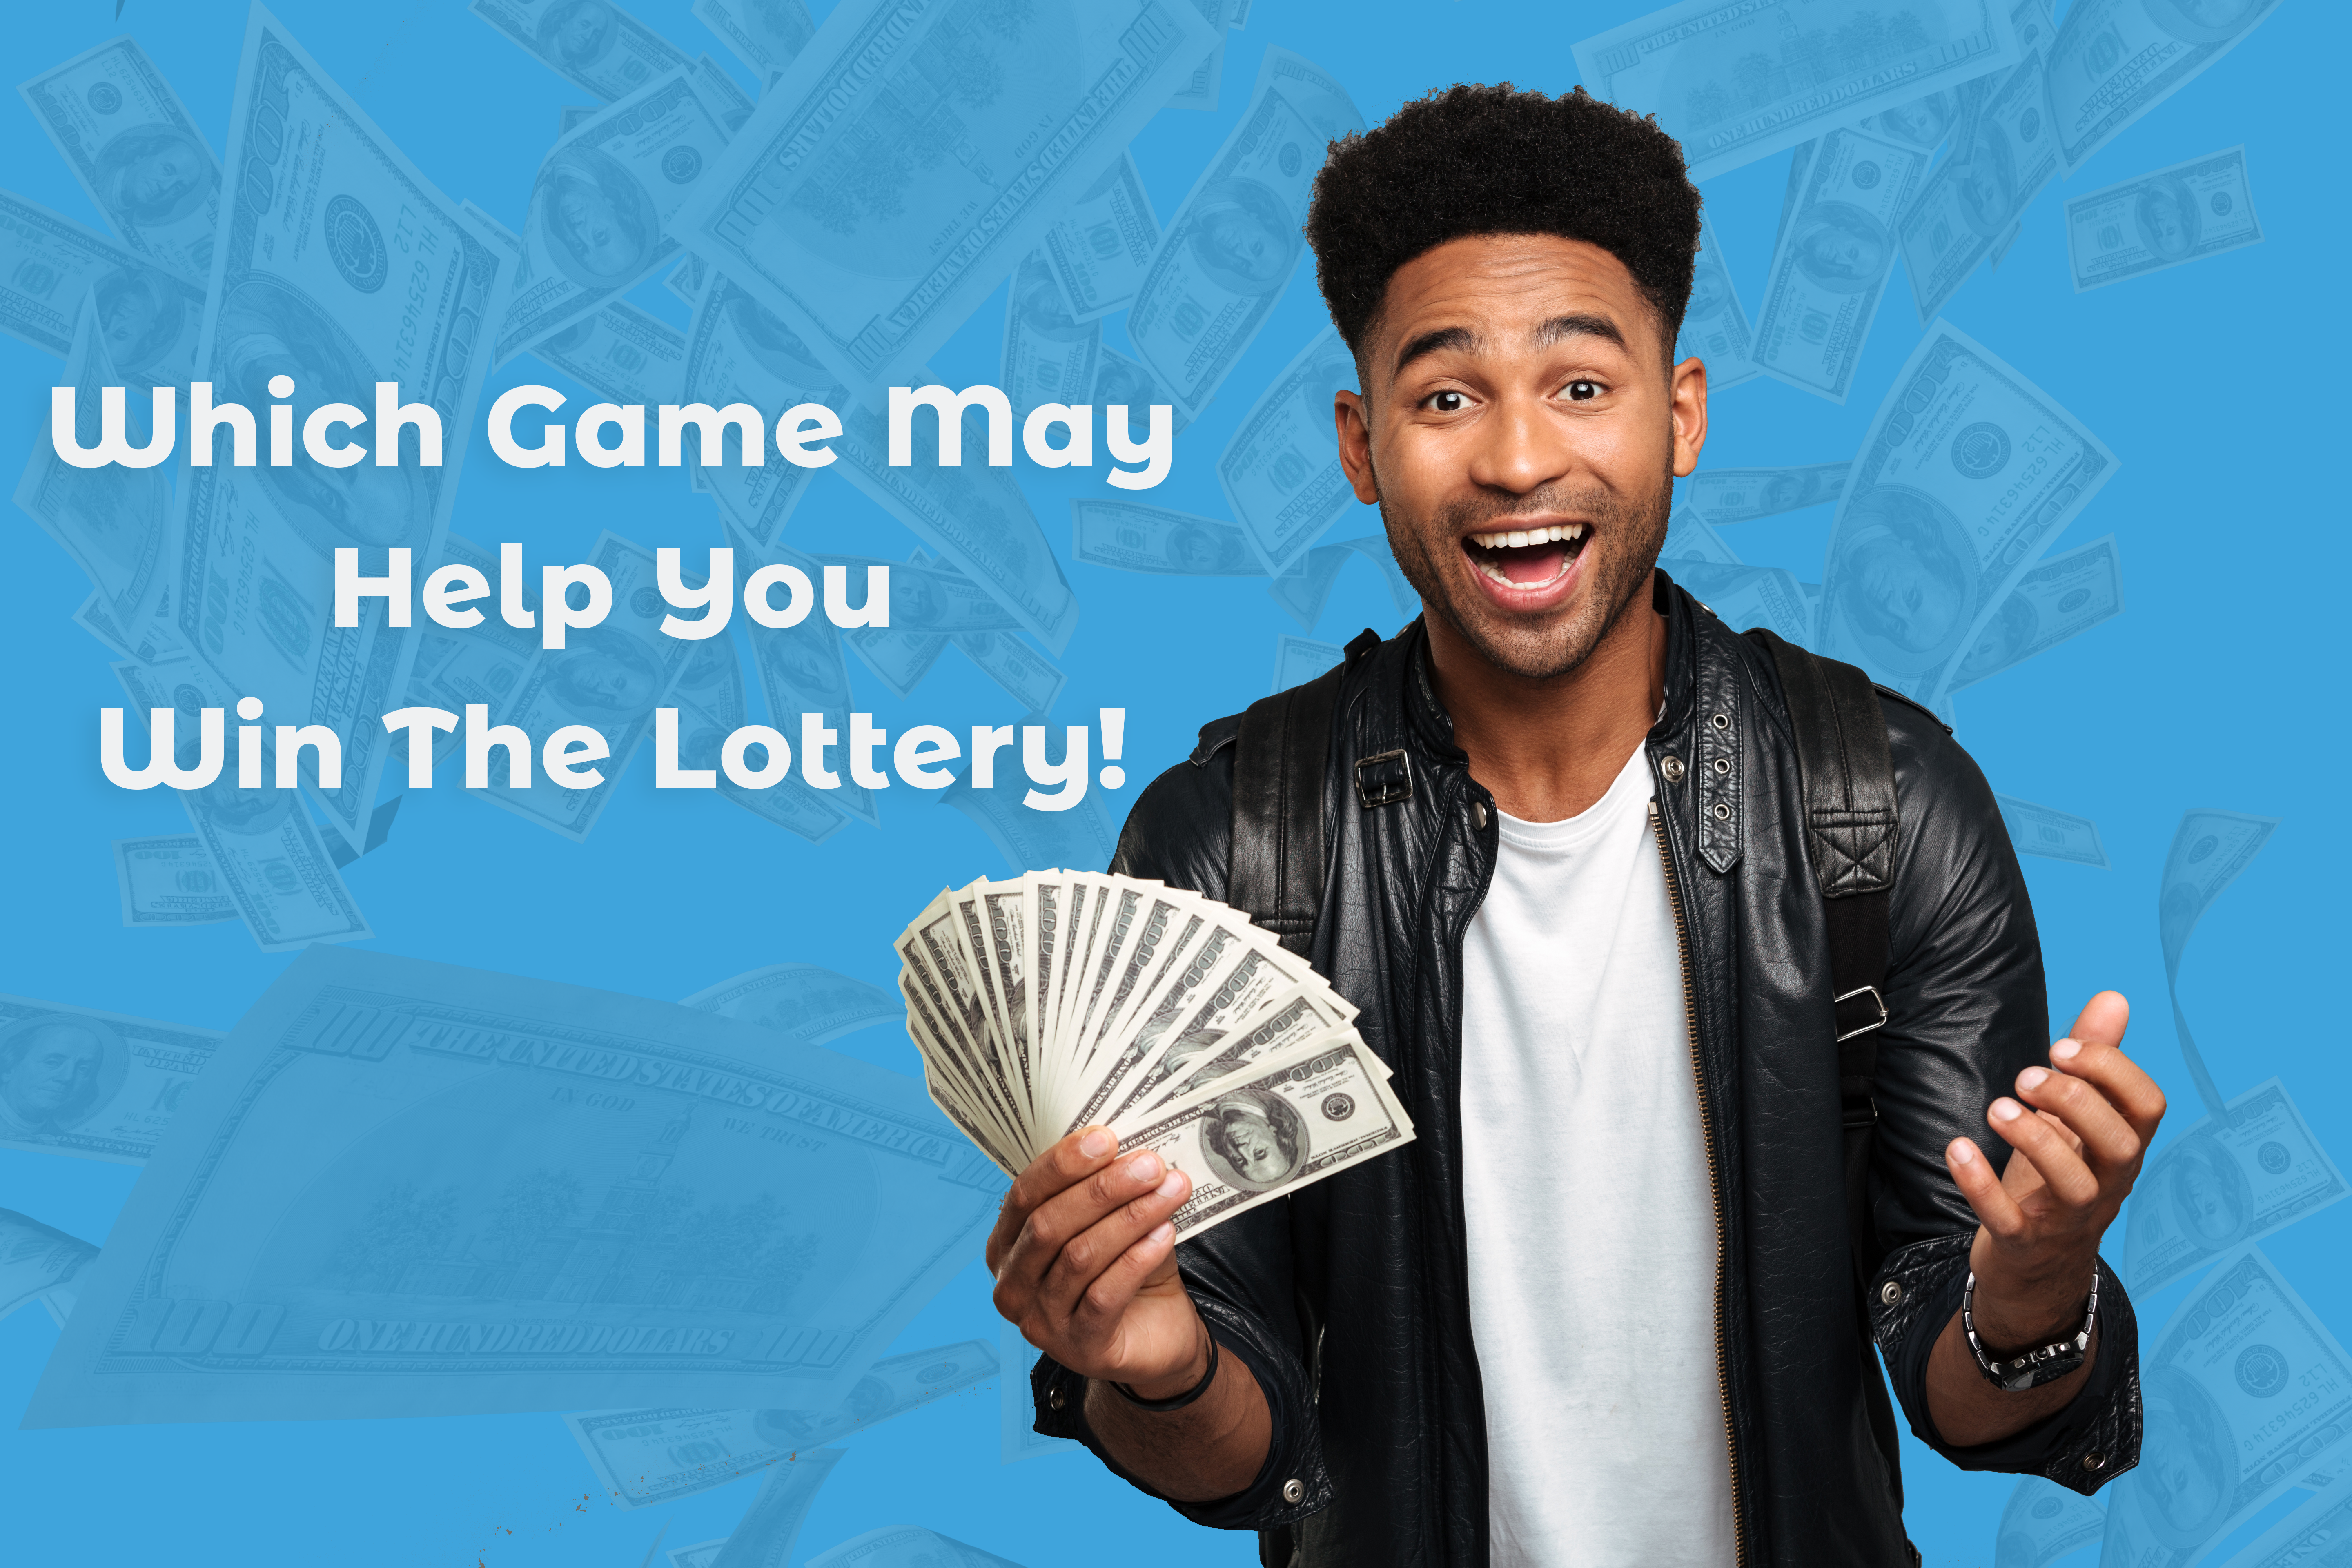 which-game-may-help-you-win-the-lottery